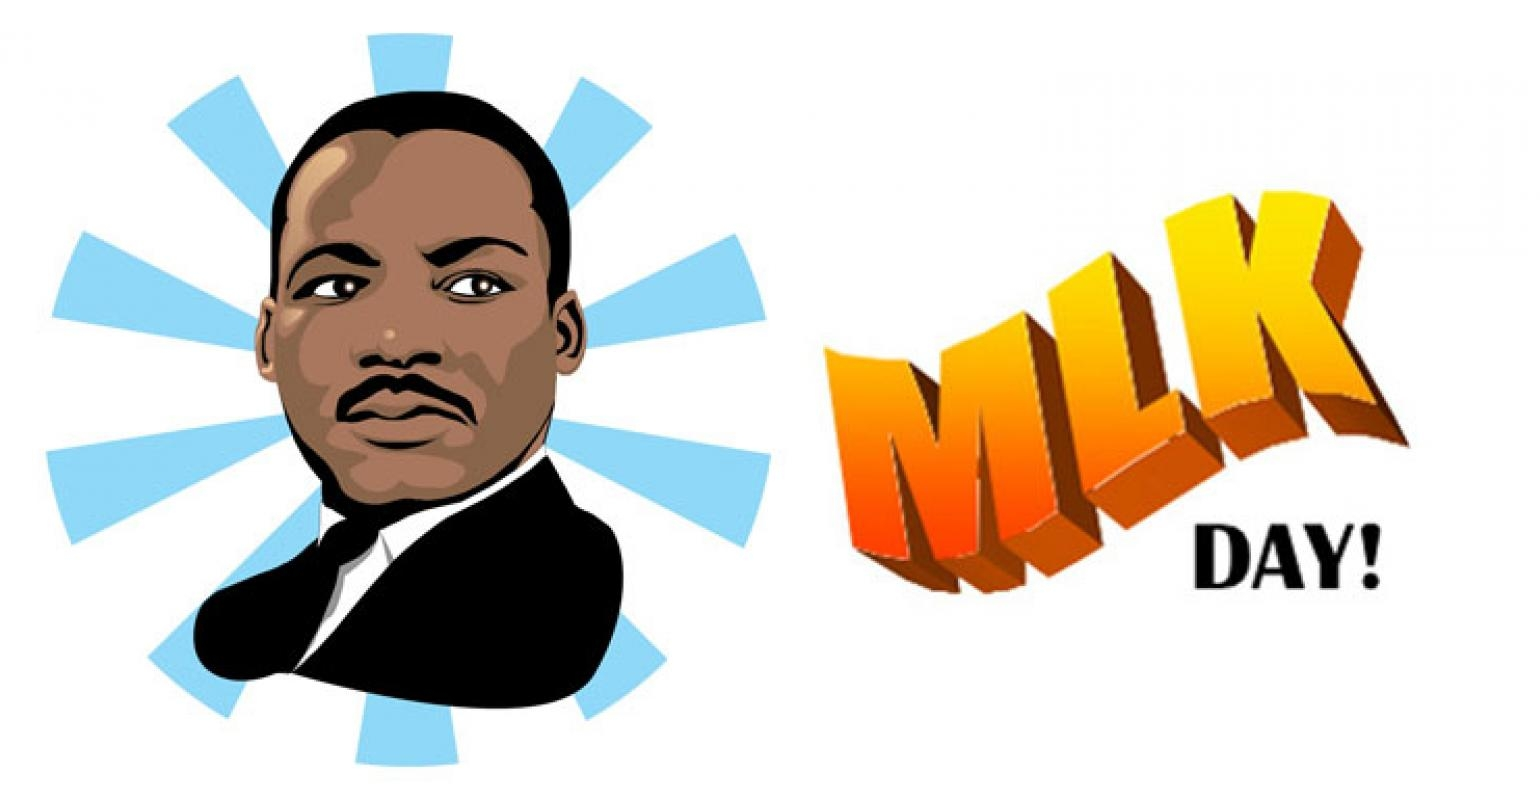 Mlk clipart Inspirational Martin Luther King Jr Day Camp A.